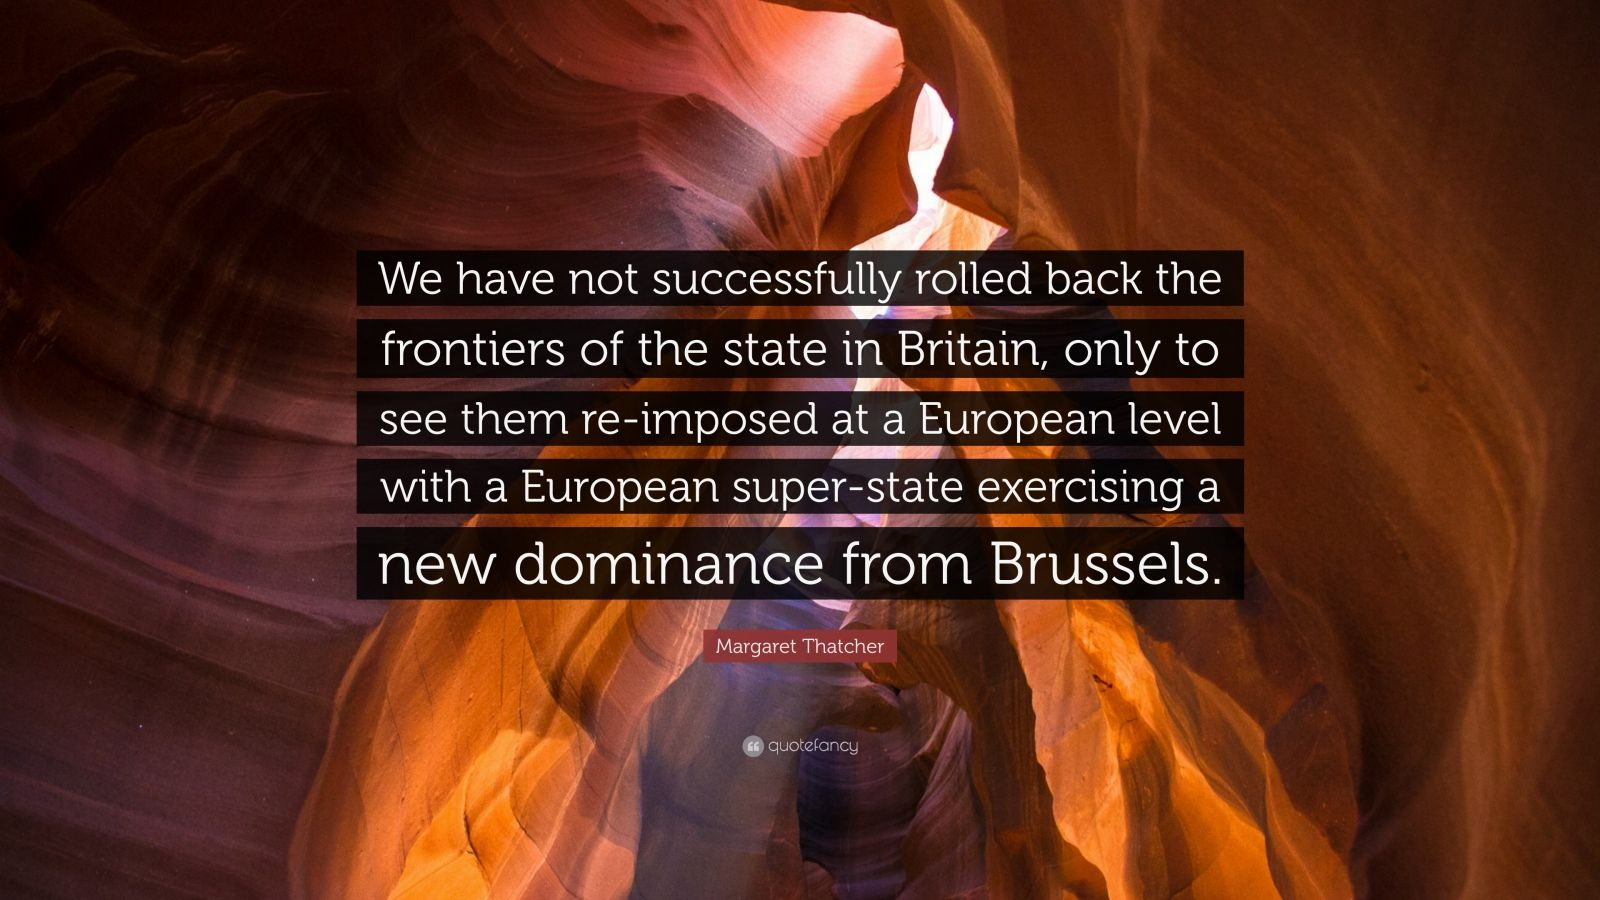 """Margaret Thatcher Quote: """"We have not successfully rolled back the frontiers of the state in Britain, only to see them re-imposed at a European level with a European super-state exercising a new dominance from Brussels."""""""